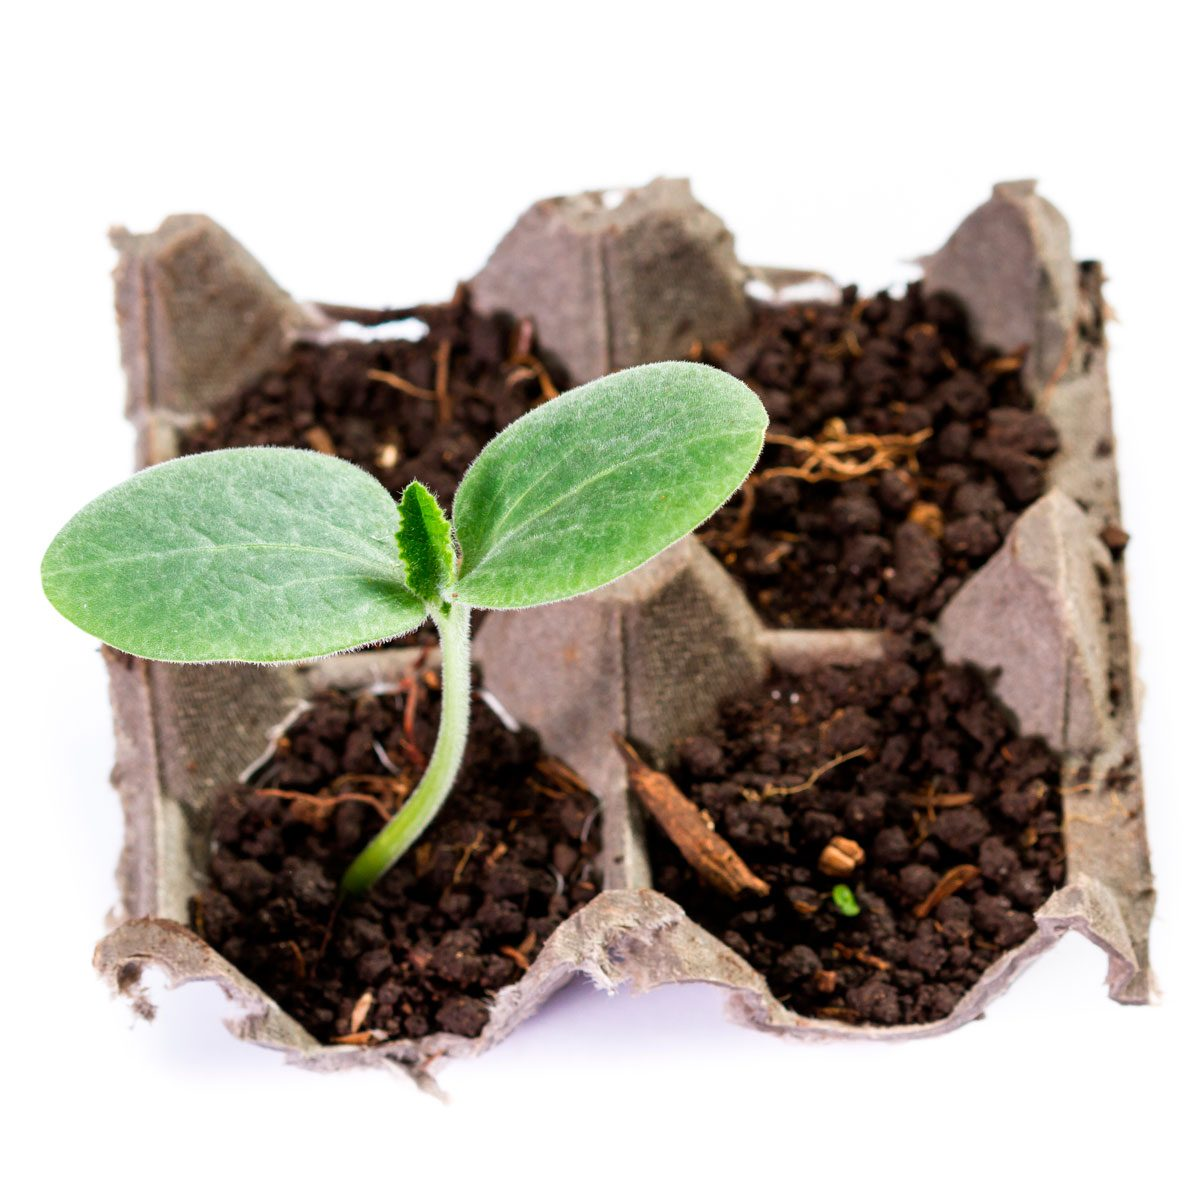 12 Common Household Items You Can Upcycle Into Garden Seed Starters